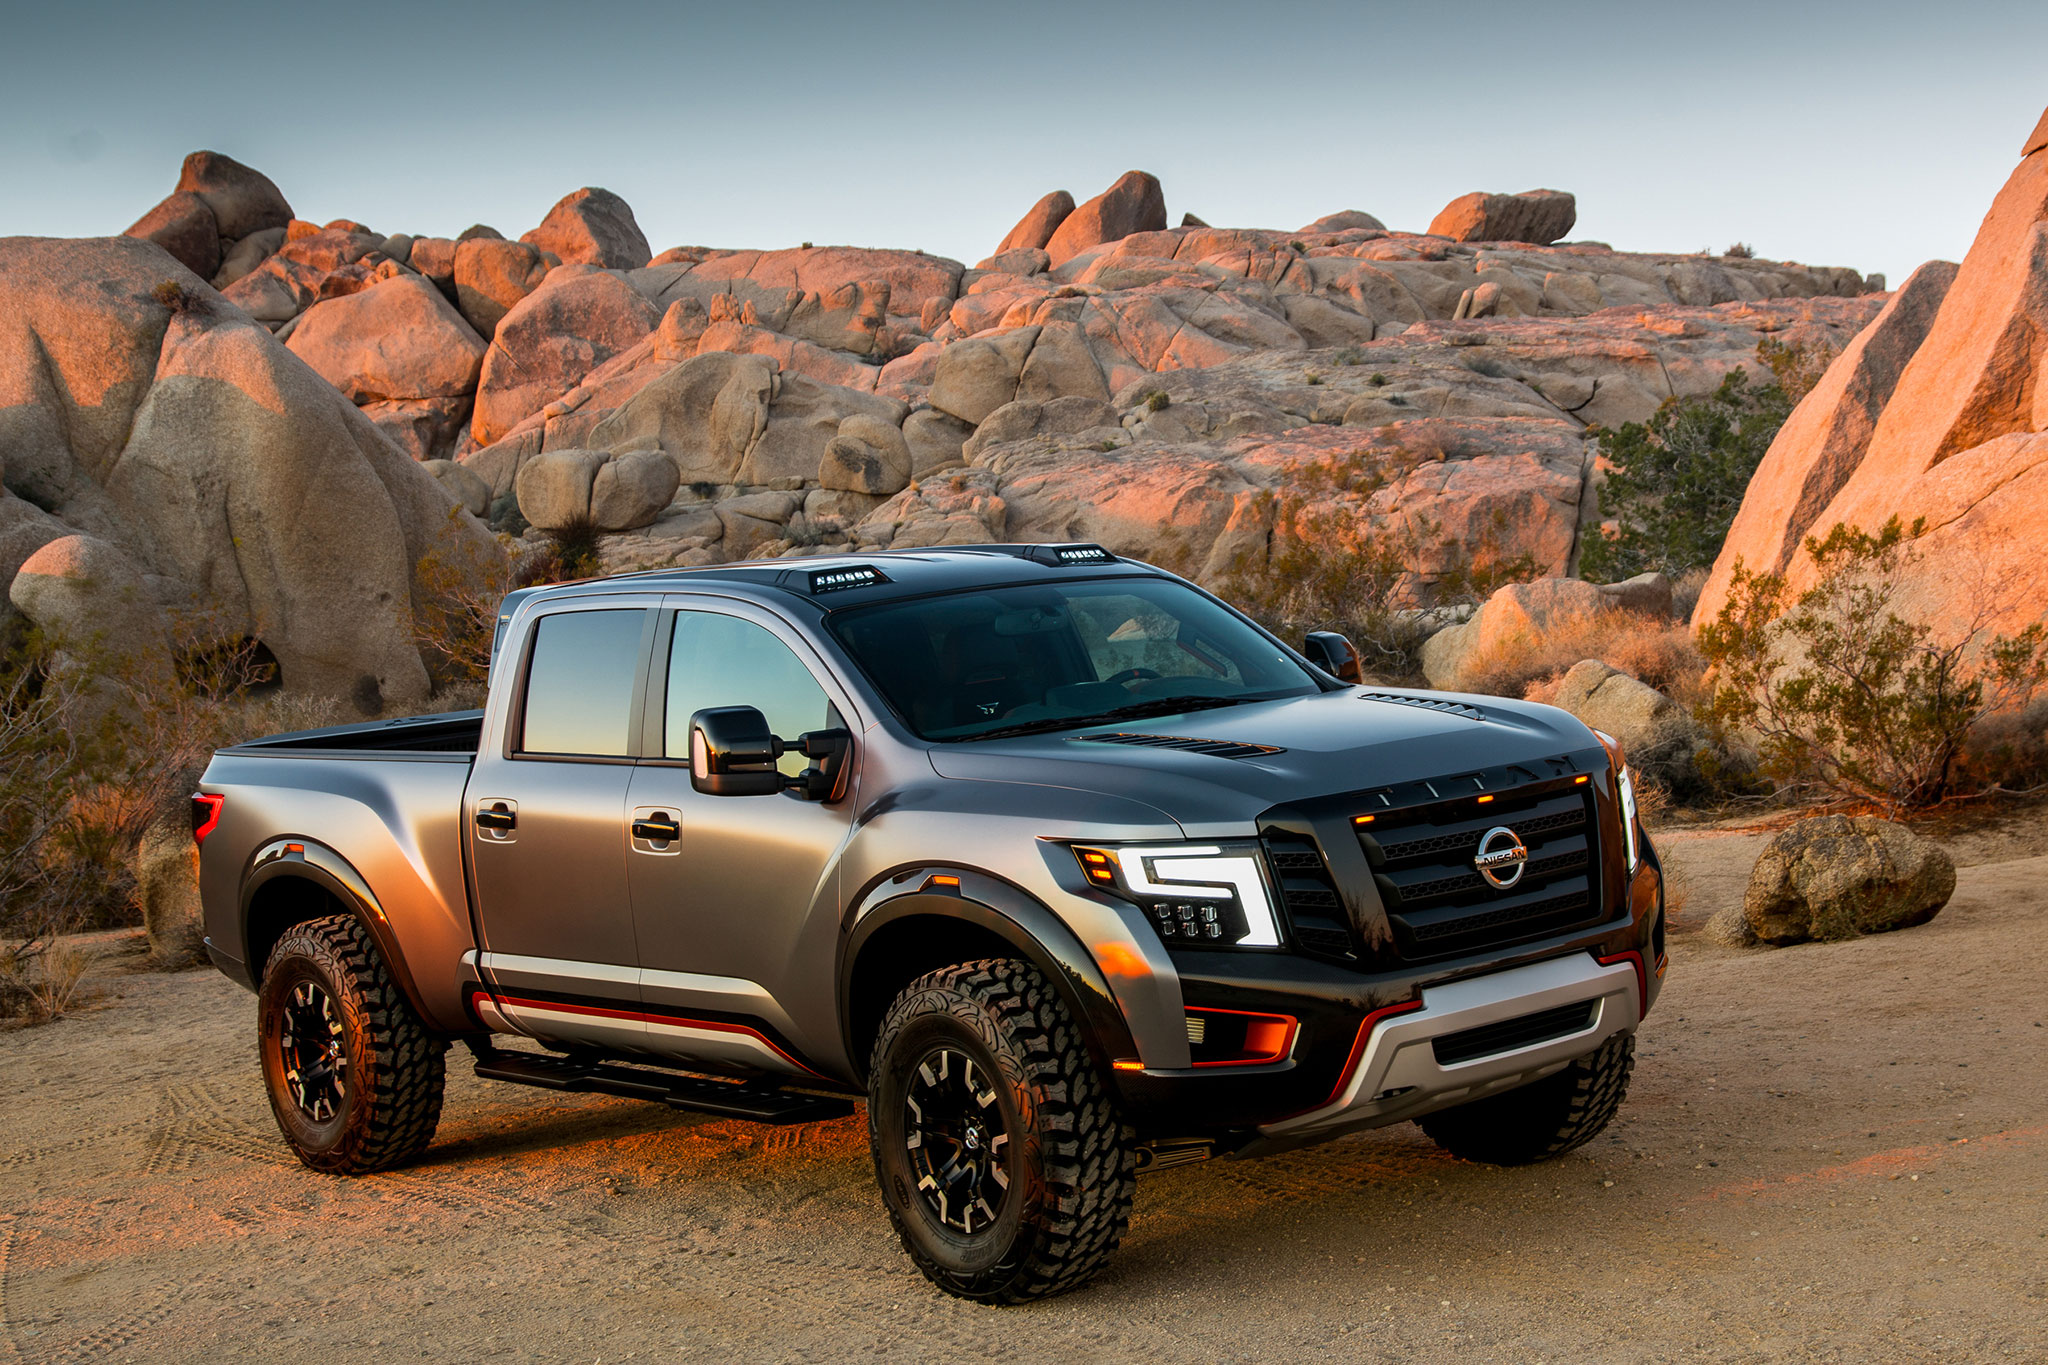 Best Pick Up Truck >> Nissan Titan Warrior Concept is an Off-Road Monster